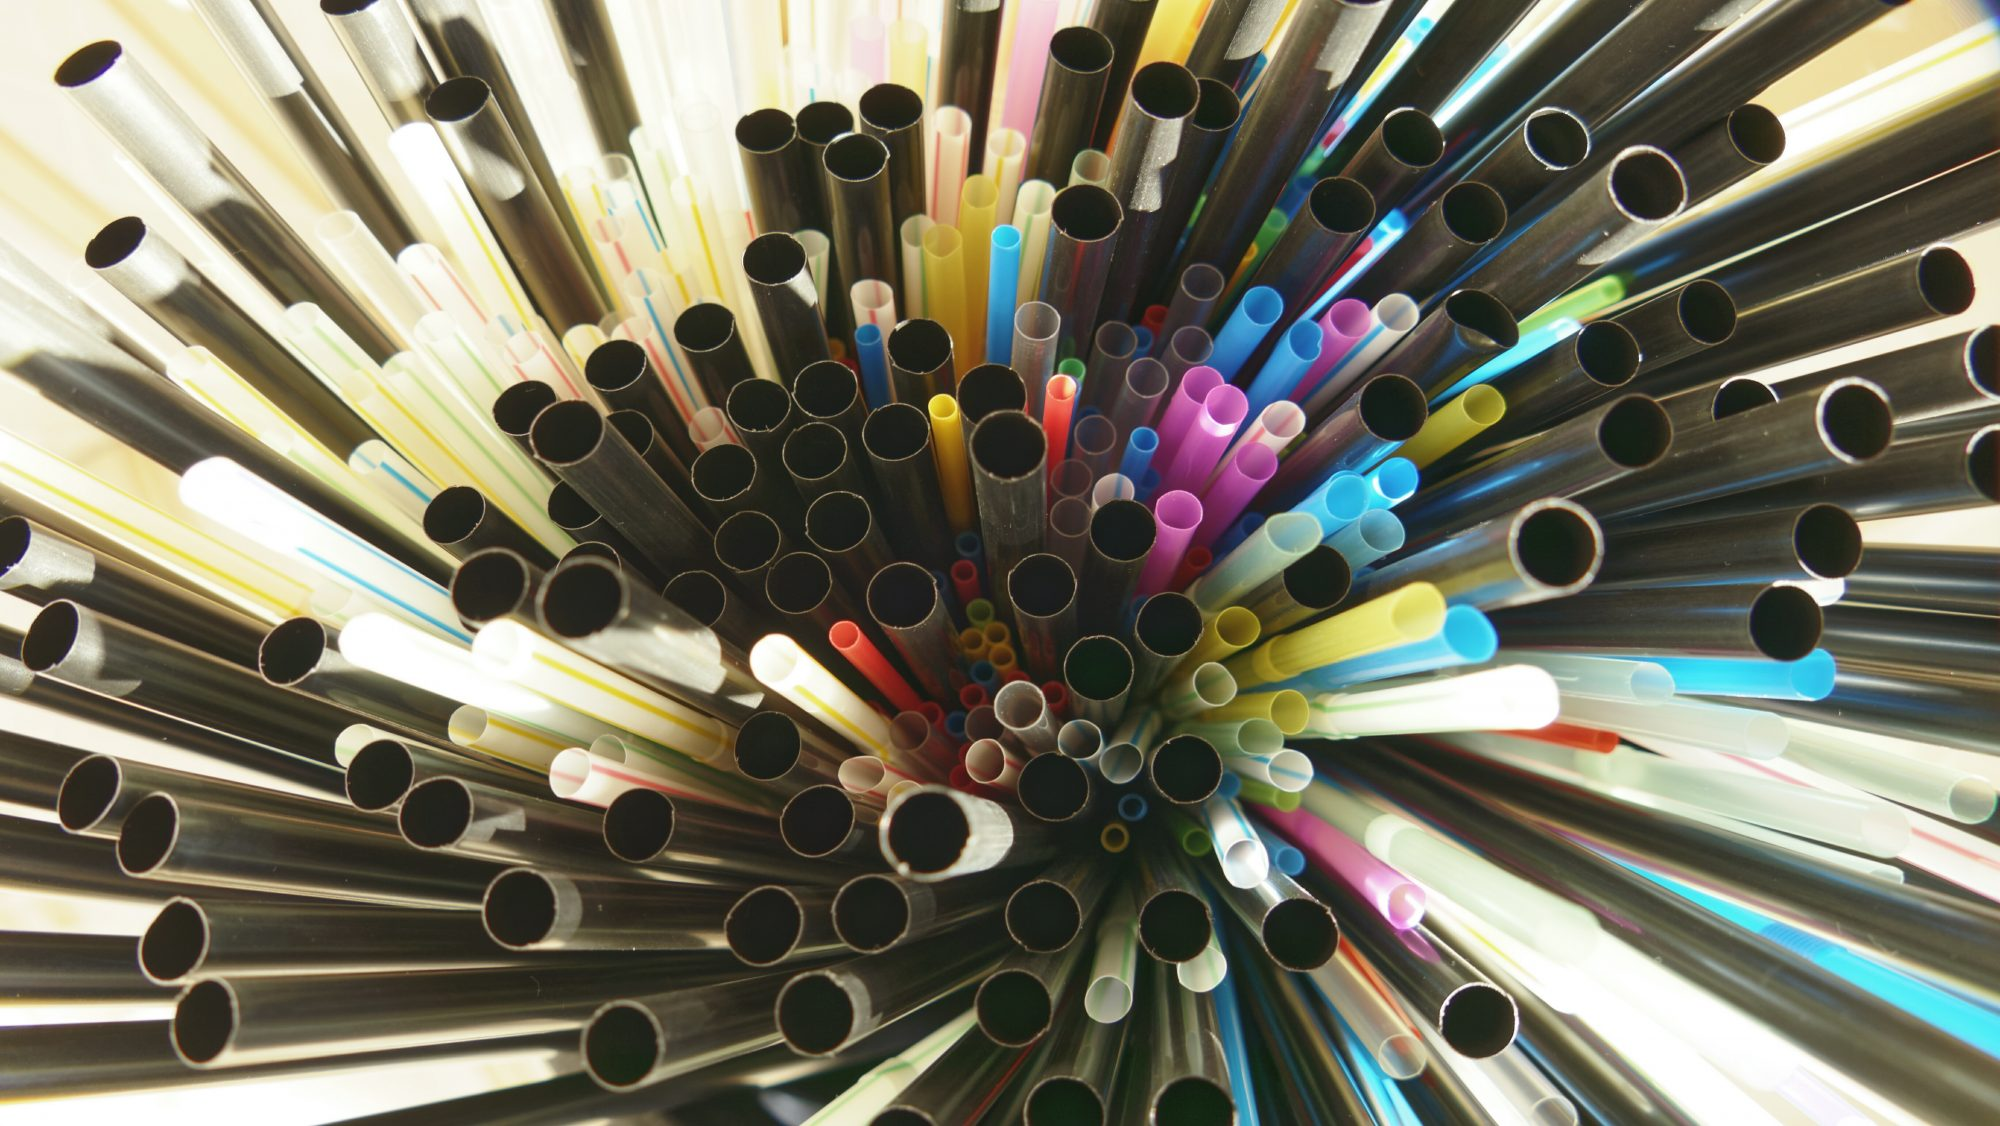 California Bans All Restaurants From Giving Out Plastic Straws